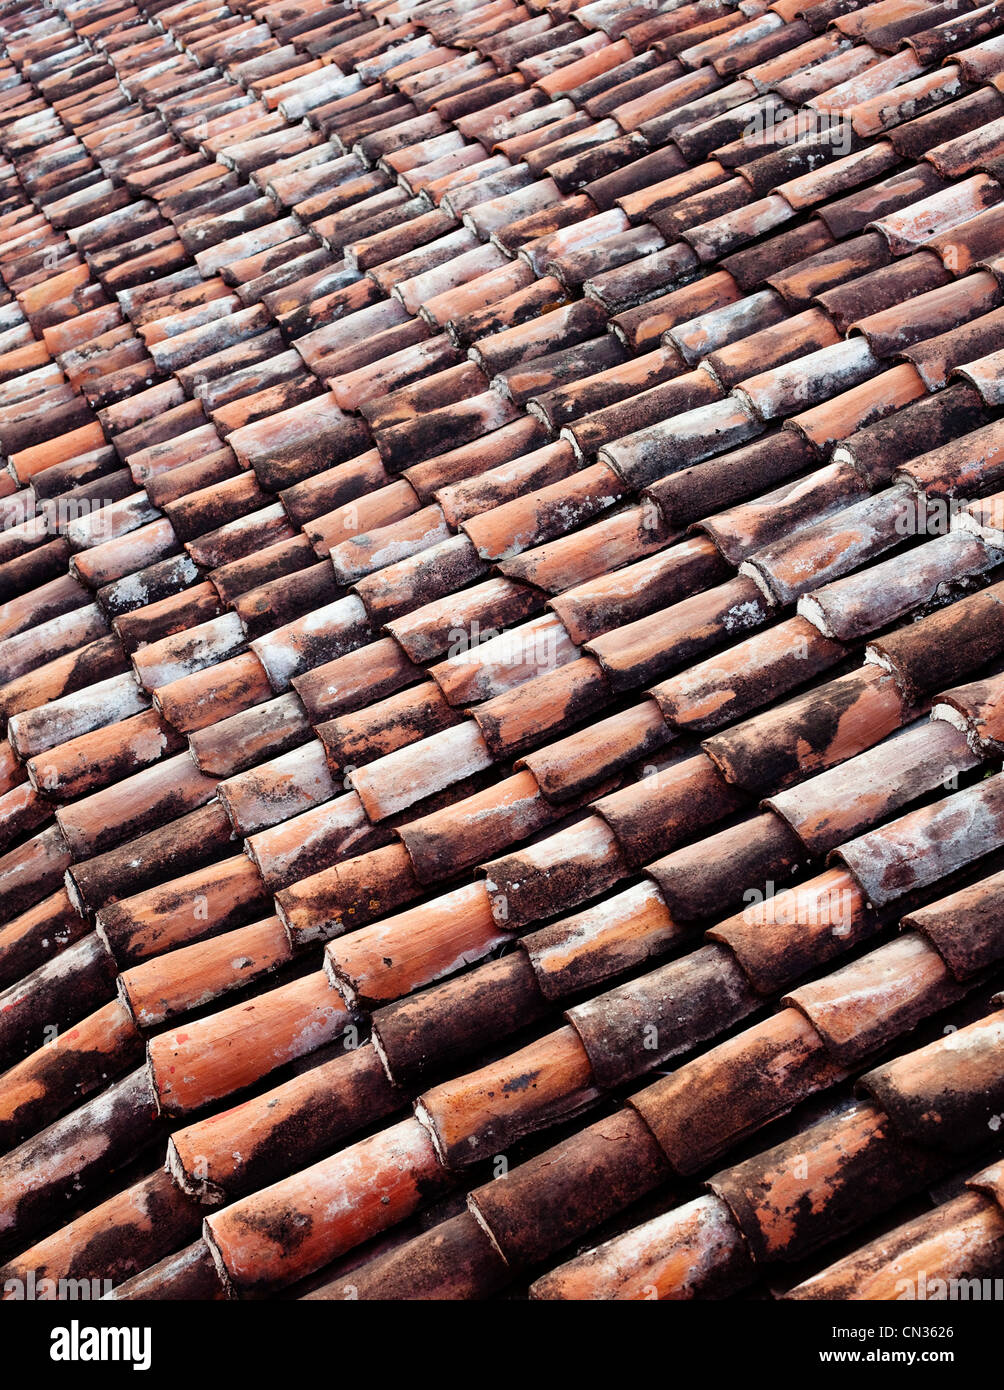 Clay roof tiles, full frame - Stock Image